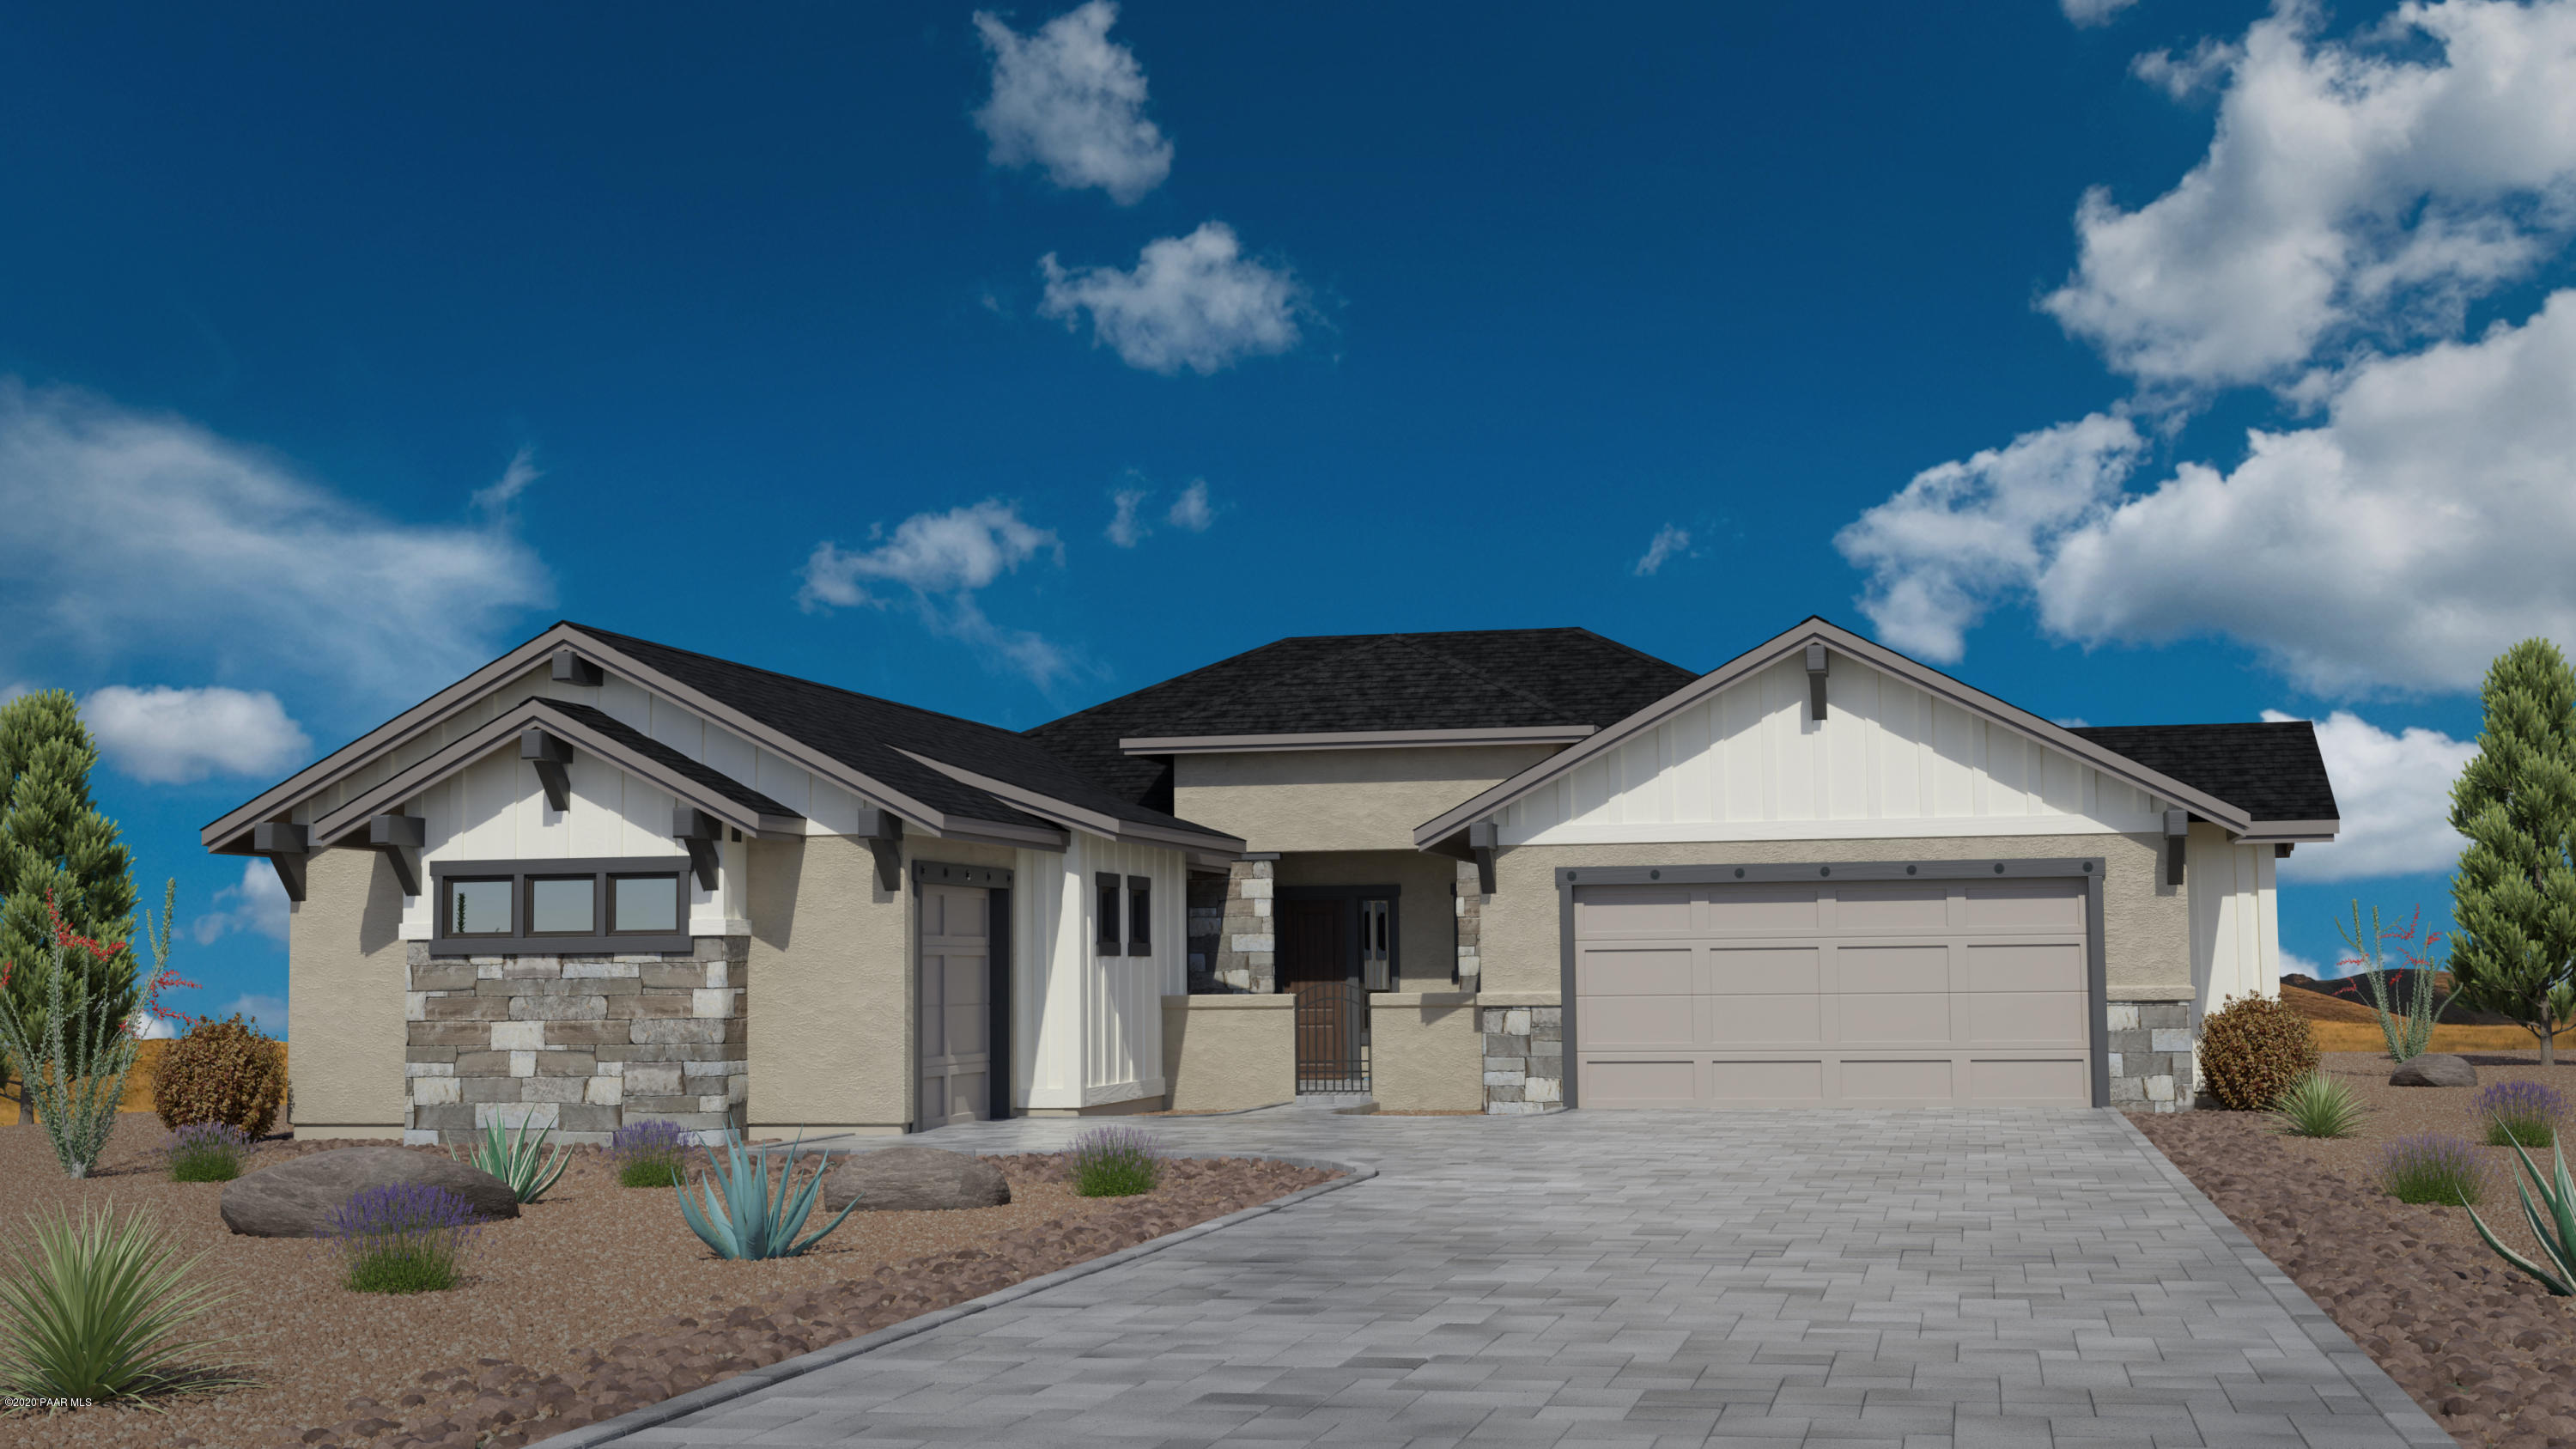 Photo of 4611 Cheshire, Prescott Valley, AZ 86314